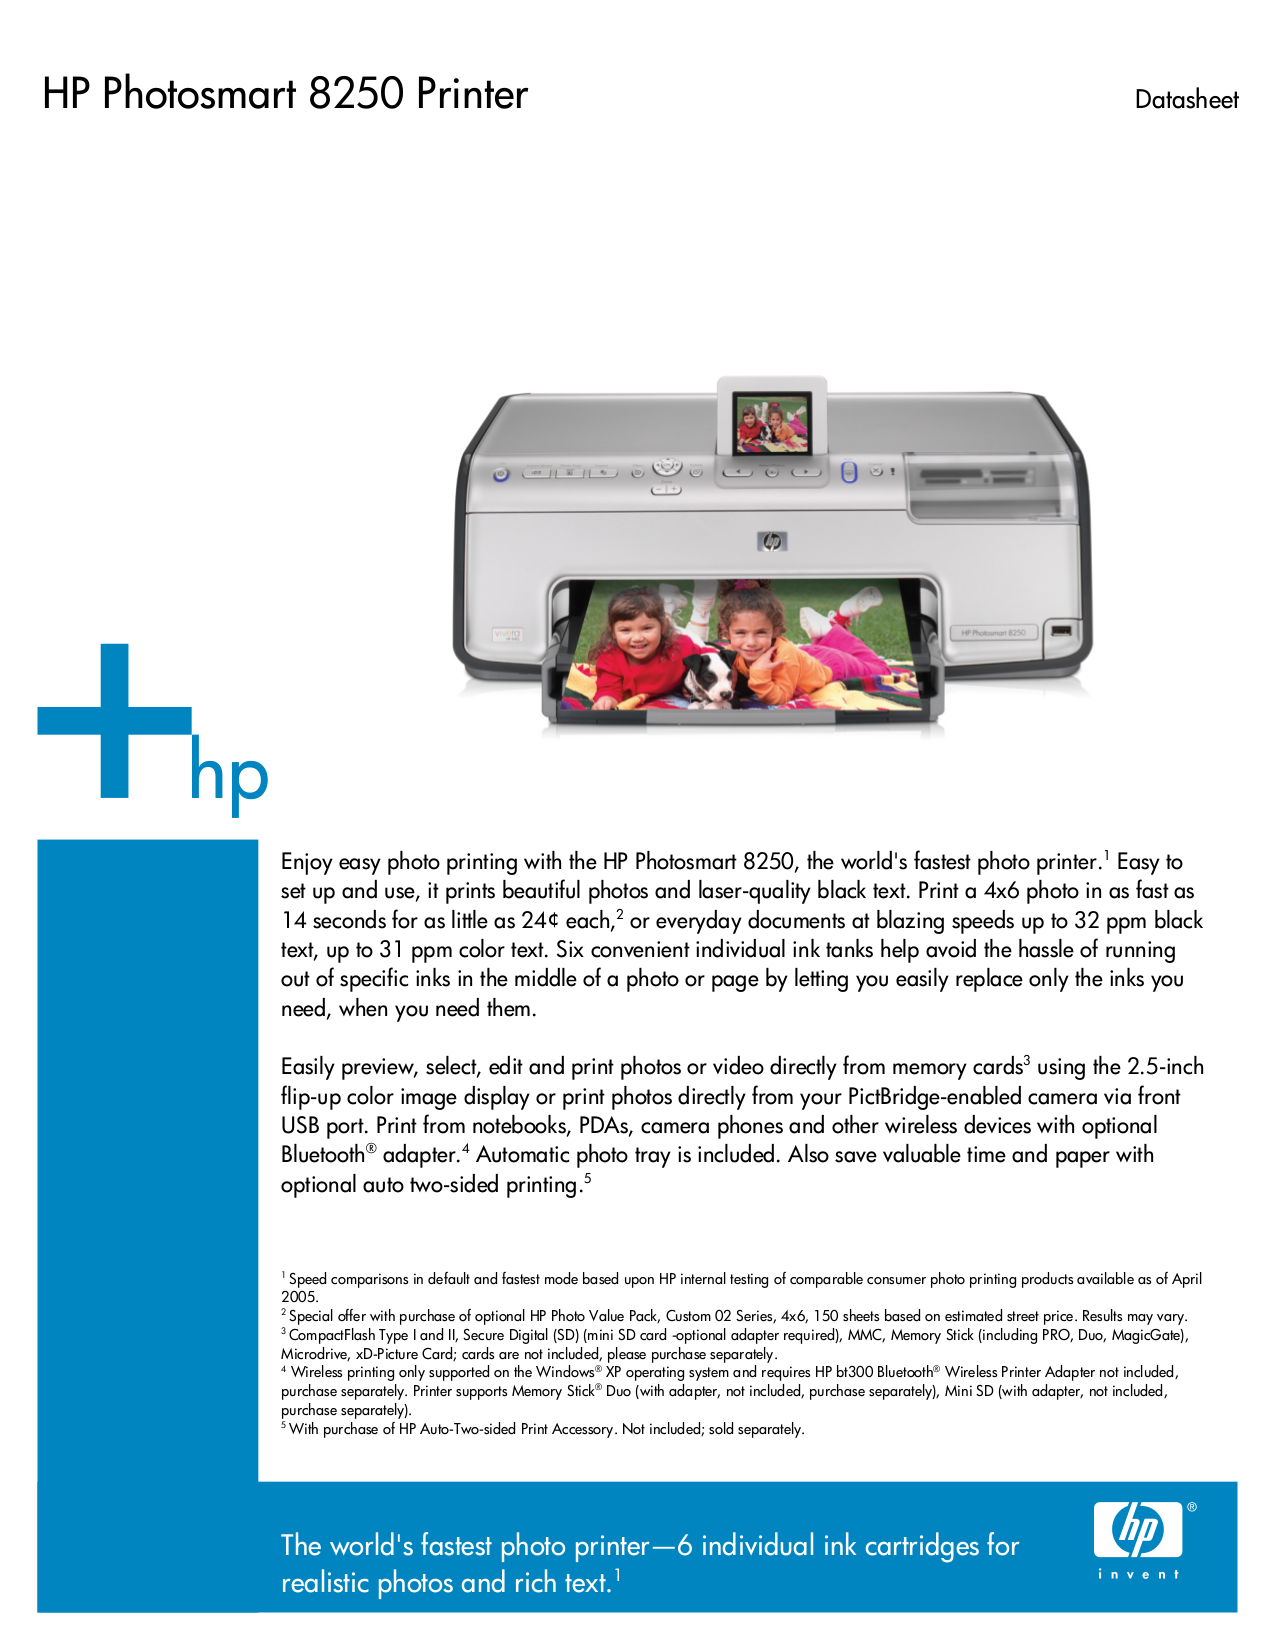 download free pdf for hp photosmart 8250 printer manual rh umlib com hp photosmart 8250 manual pdf hp photosmart 8250 repair manual